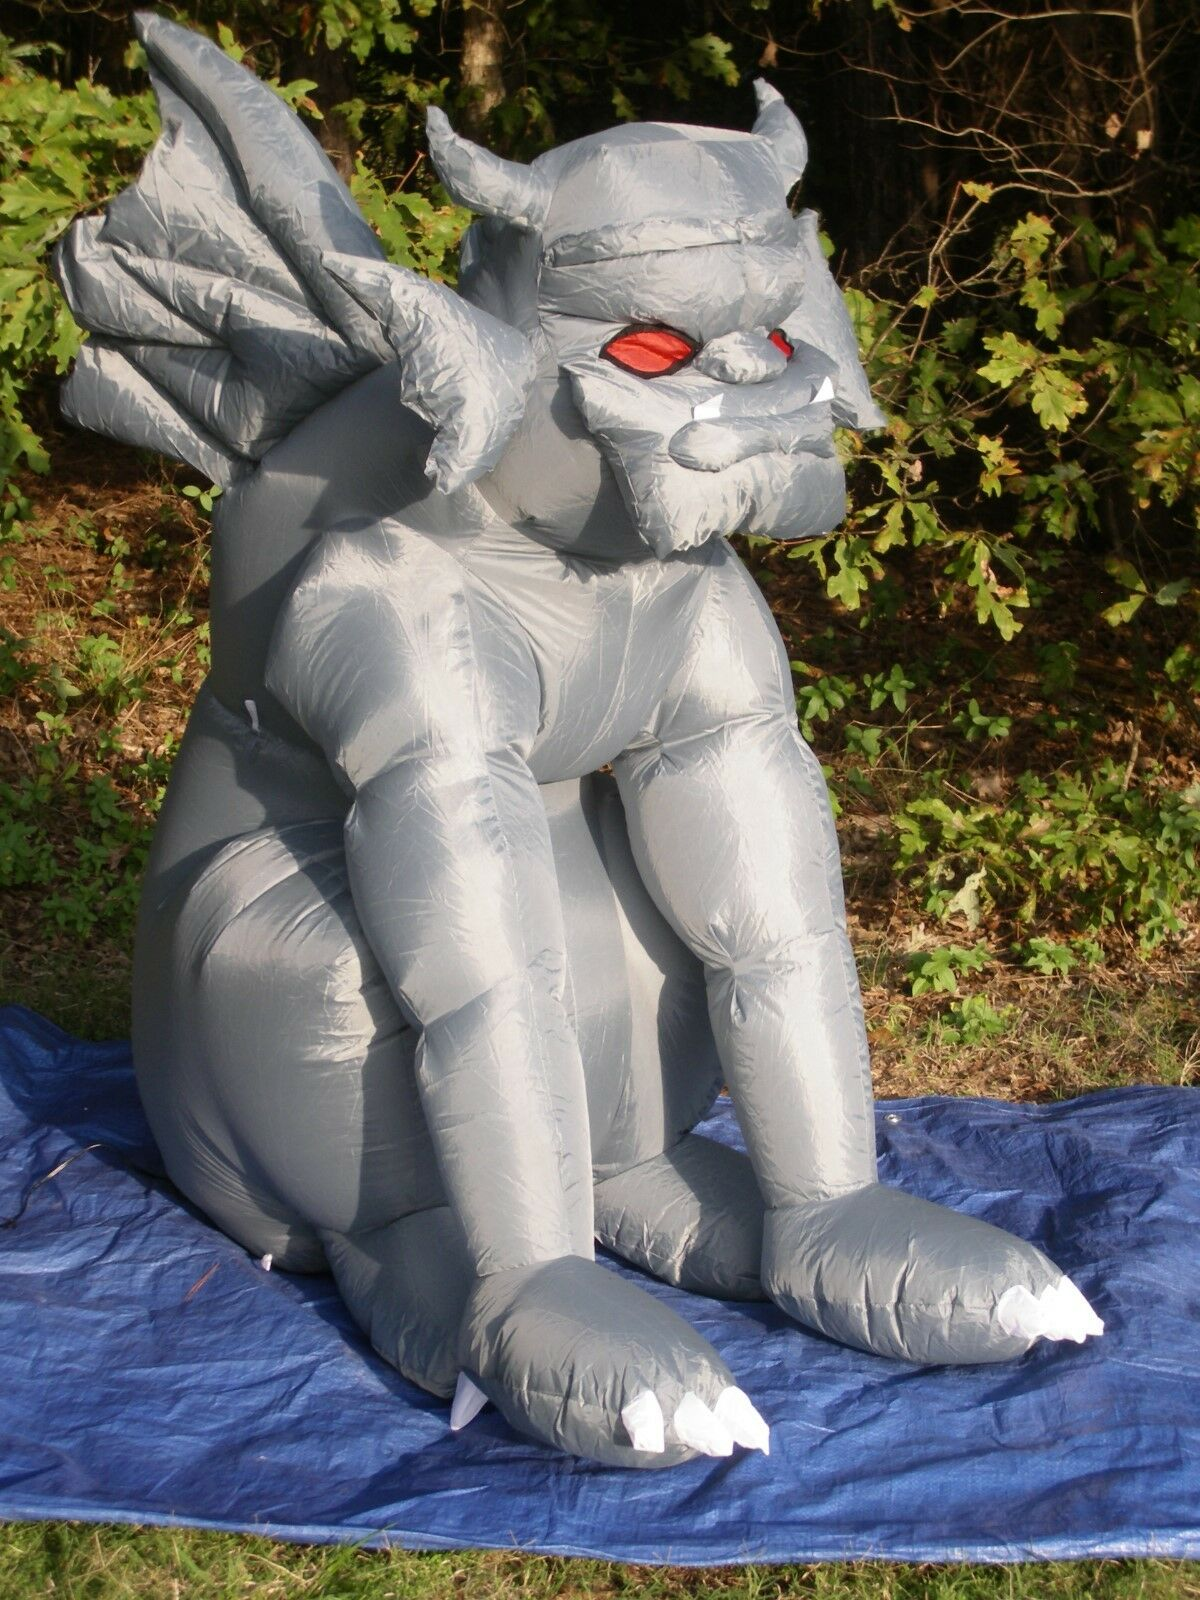 4-1/2' Tall Gemmy Lighted Haunted Gargoyle Halloween Airblown Inflatable